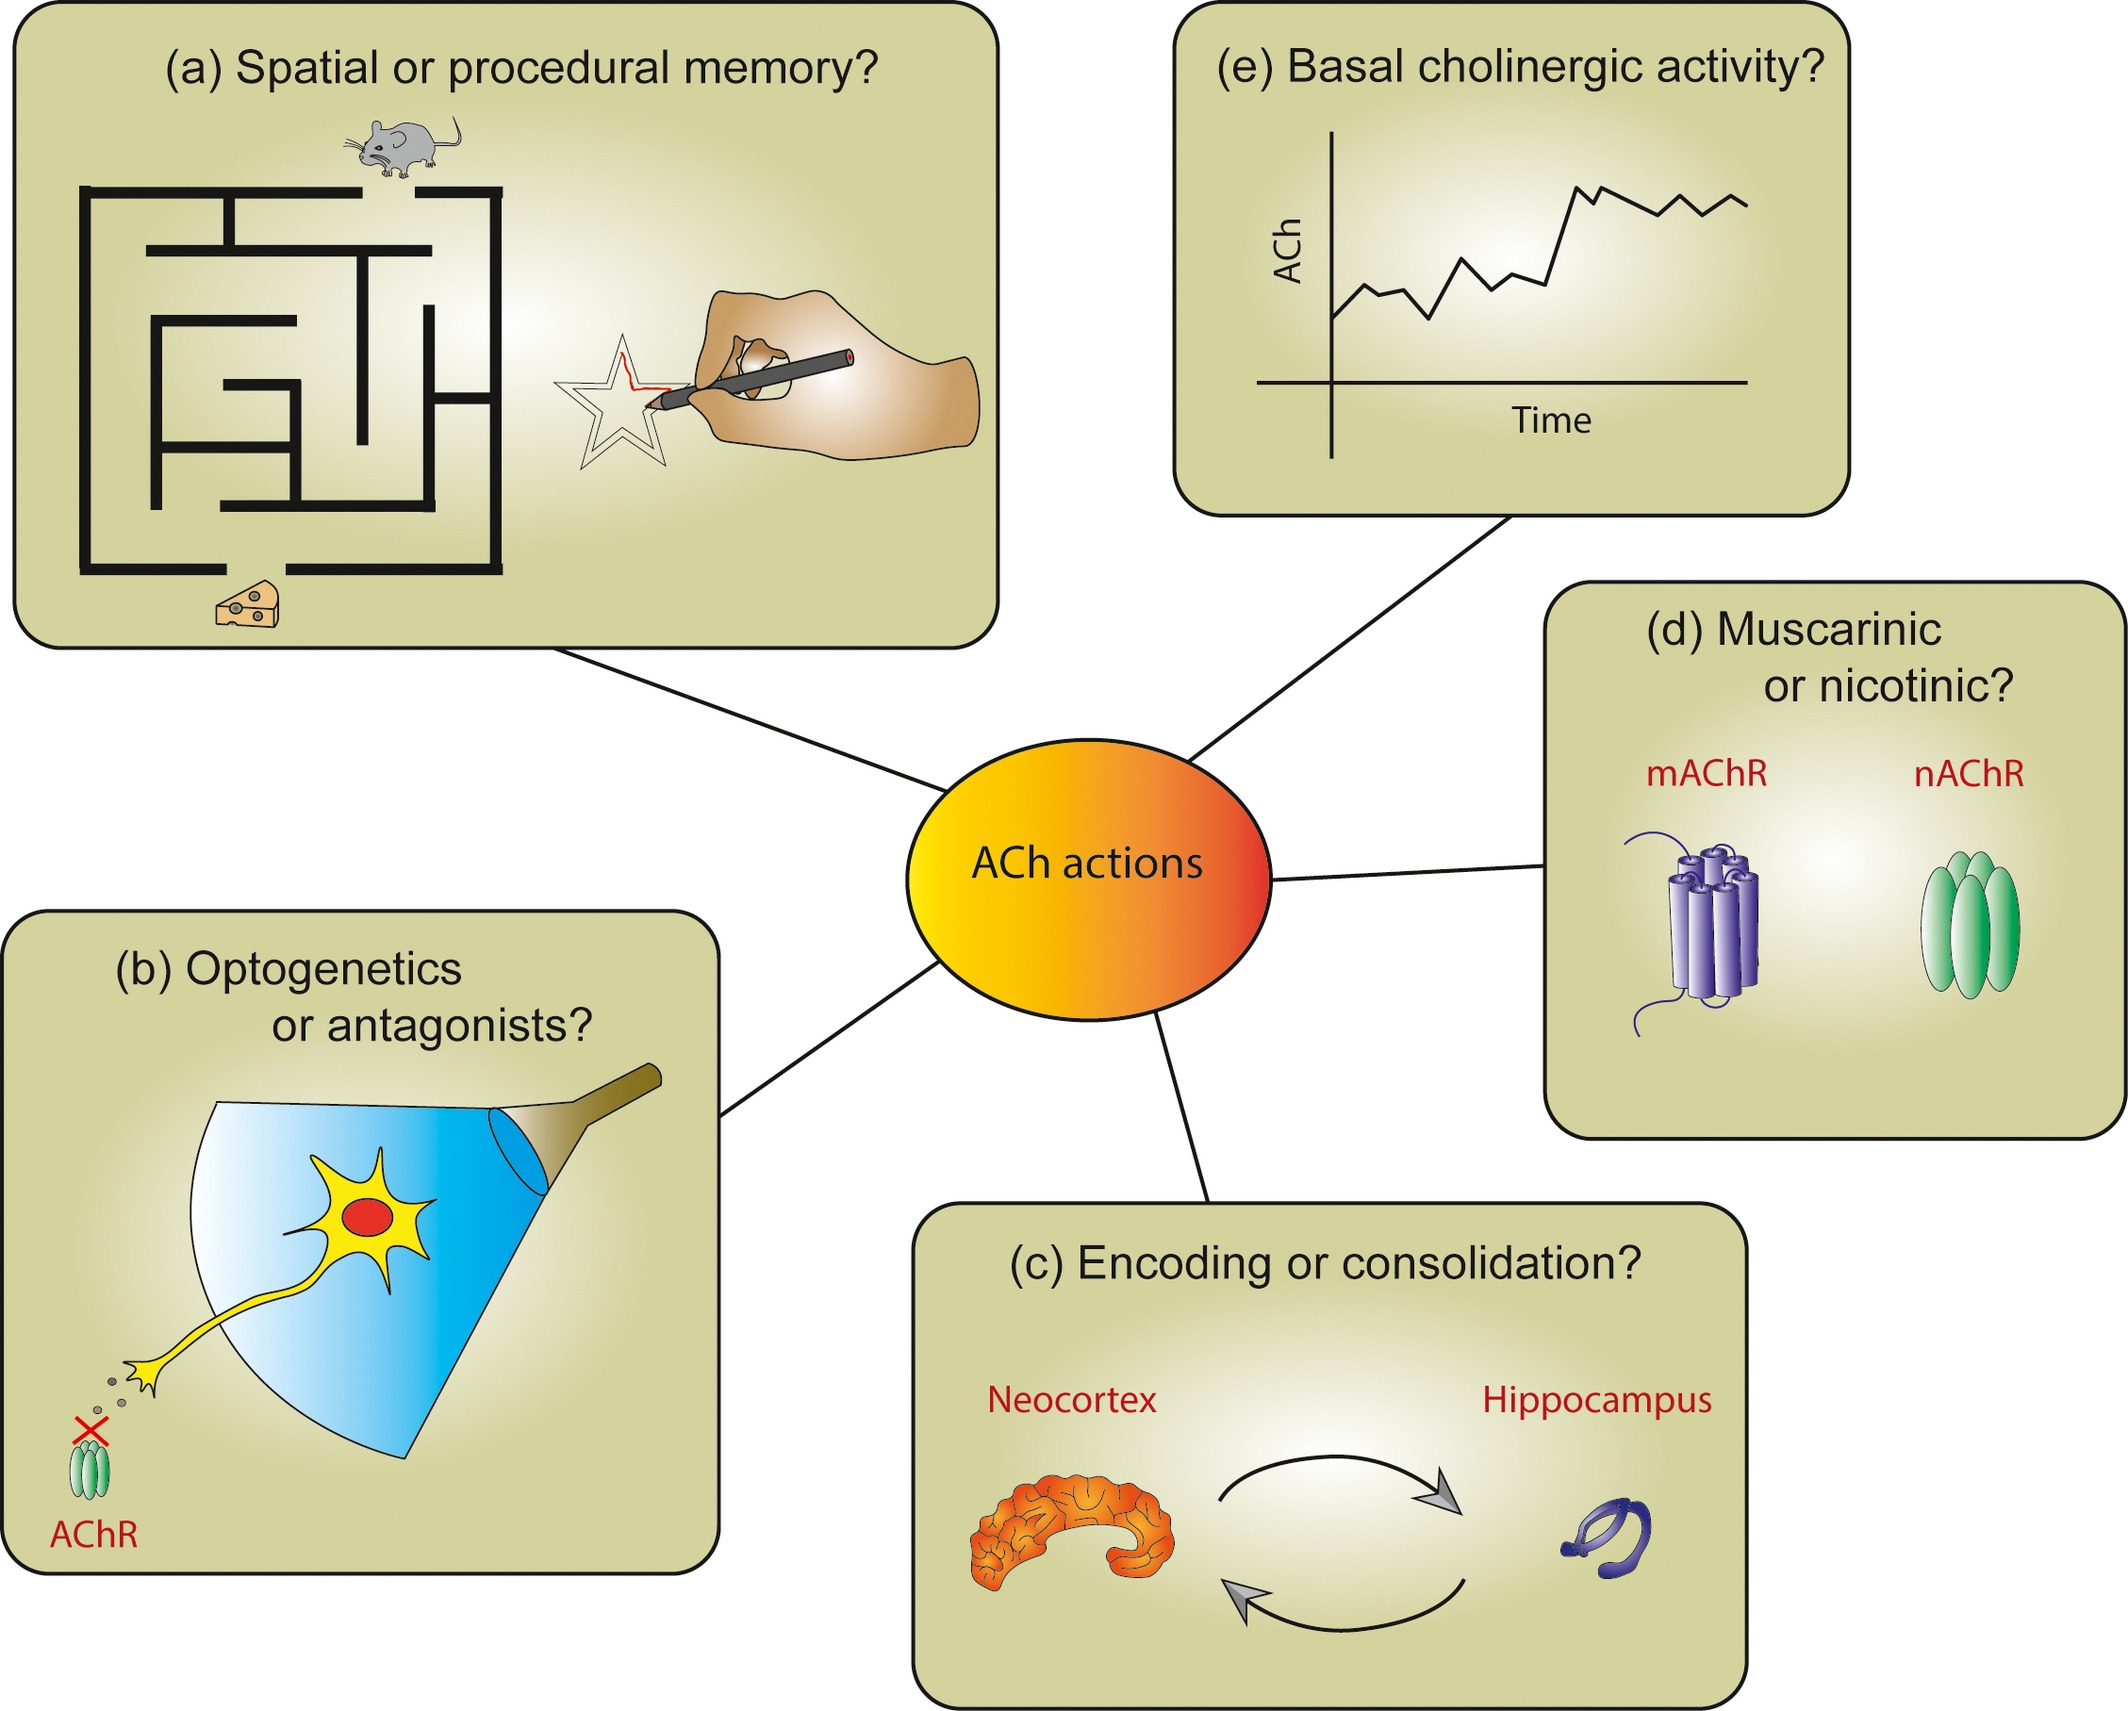 Cholinergic Modulation Of The Hippocampal Region And Memory à Mineur D Or